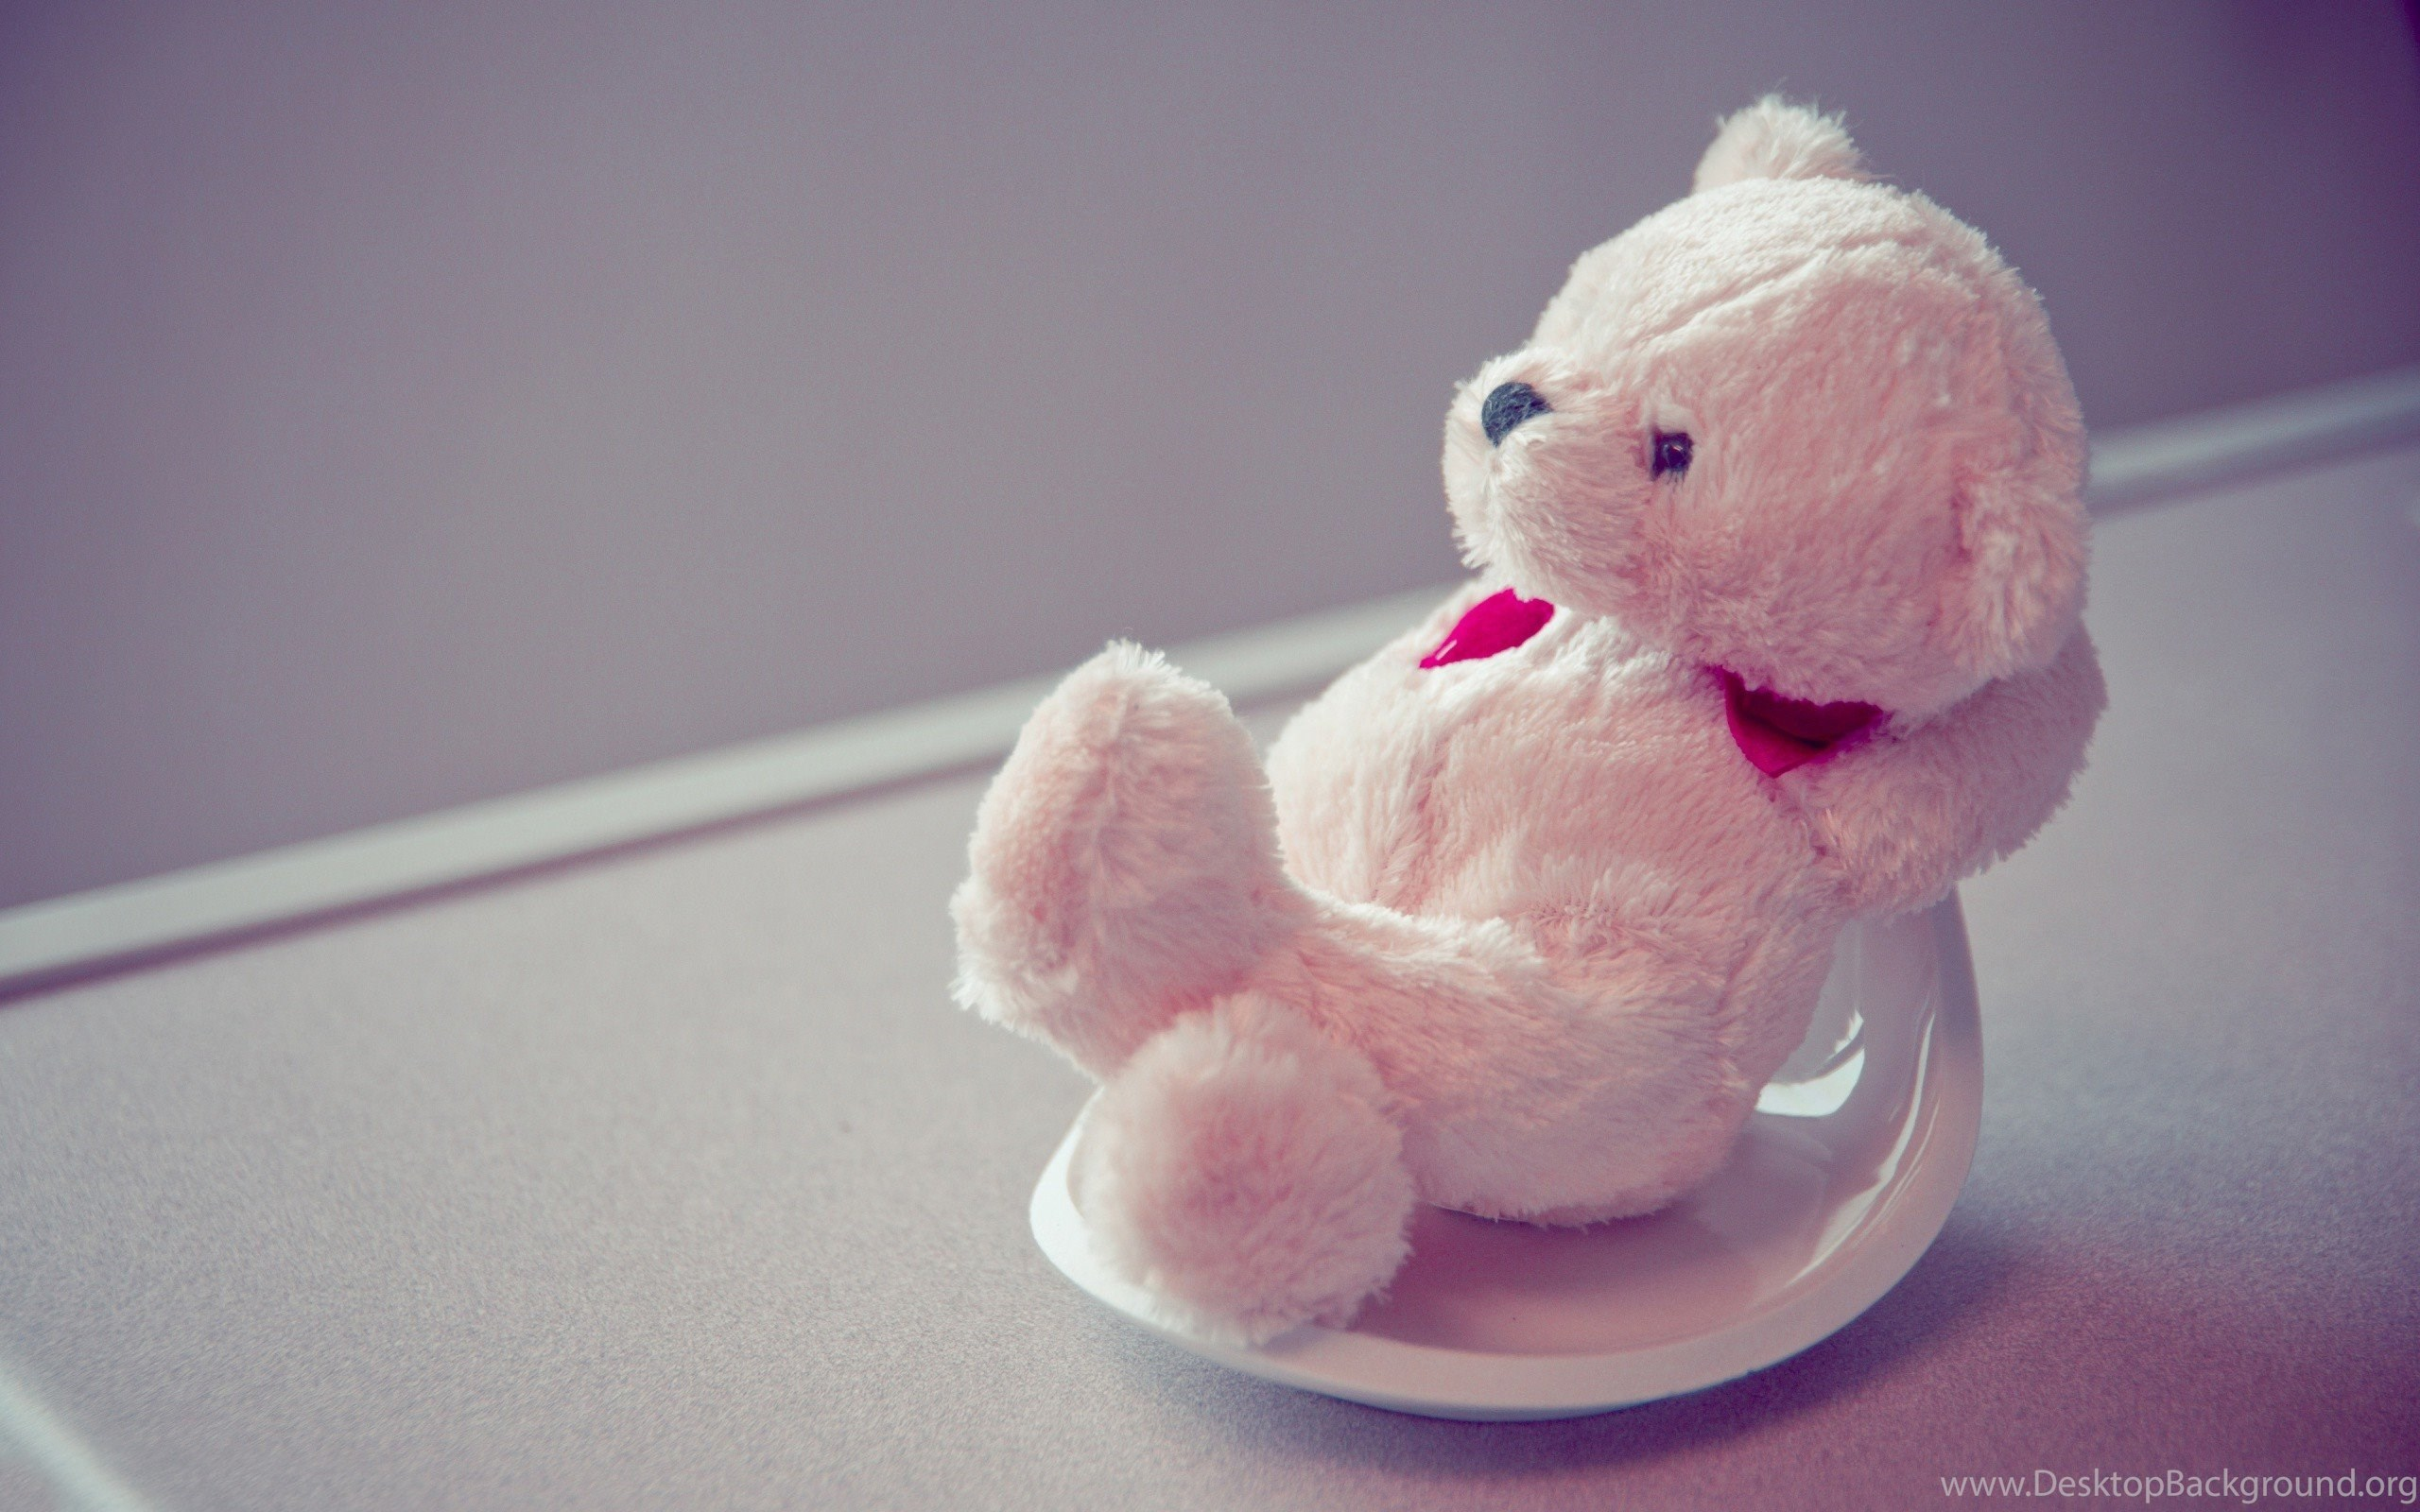 Teddy bear wallpapers desktop background original size 5787kb thecheapjerseys Image collections